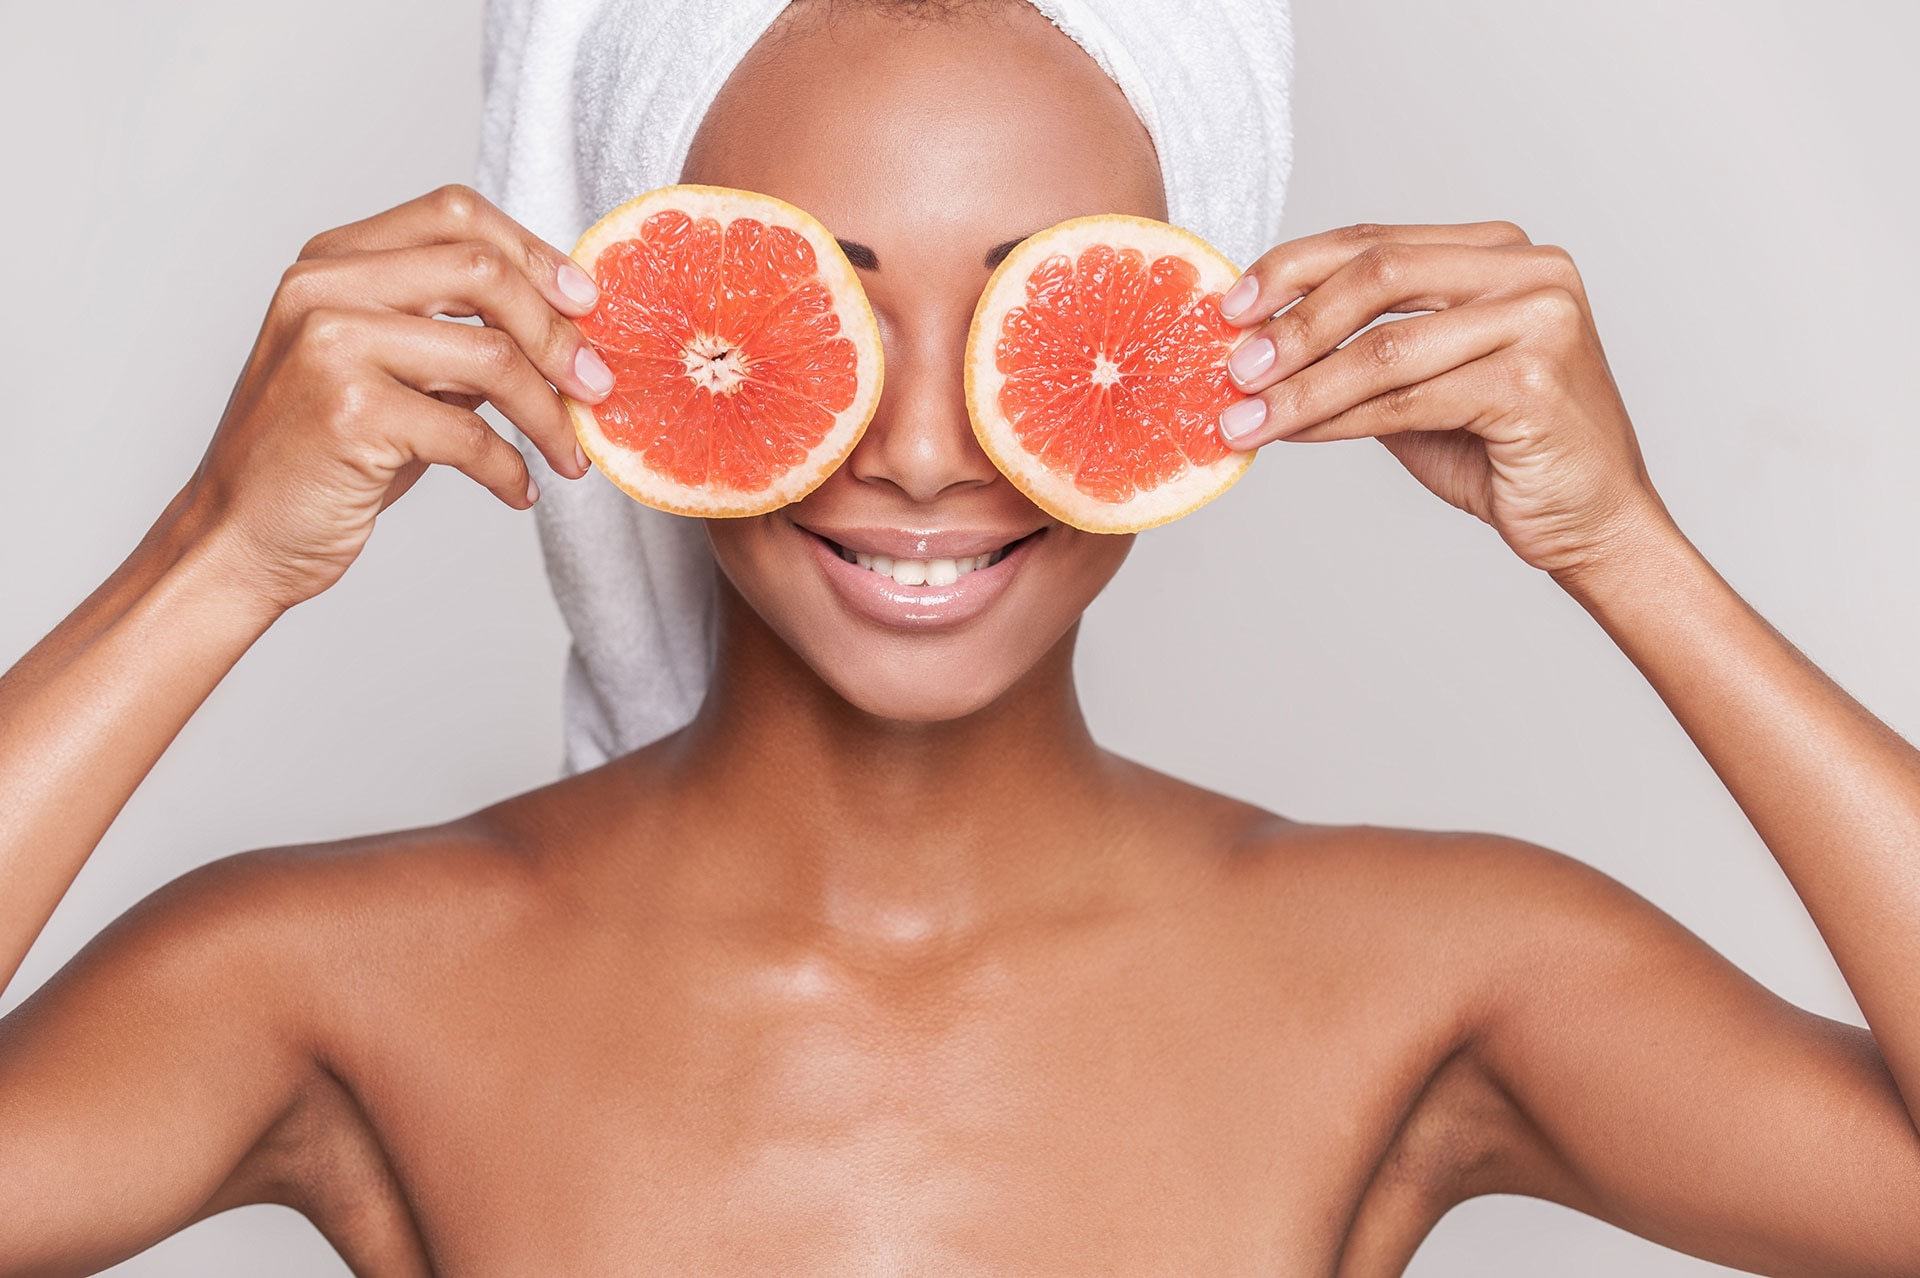 Woman holding grapefruit slices in front of her eyes